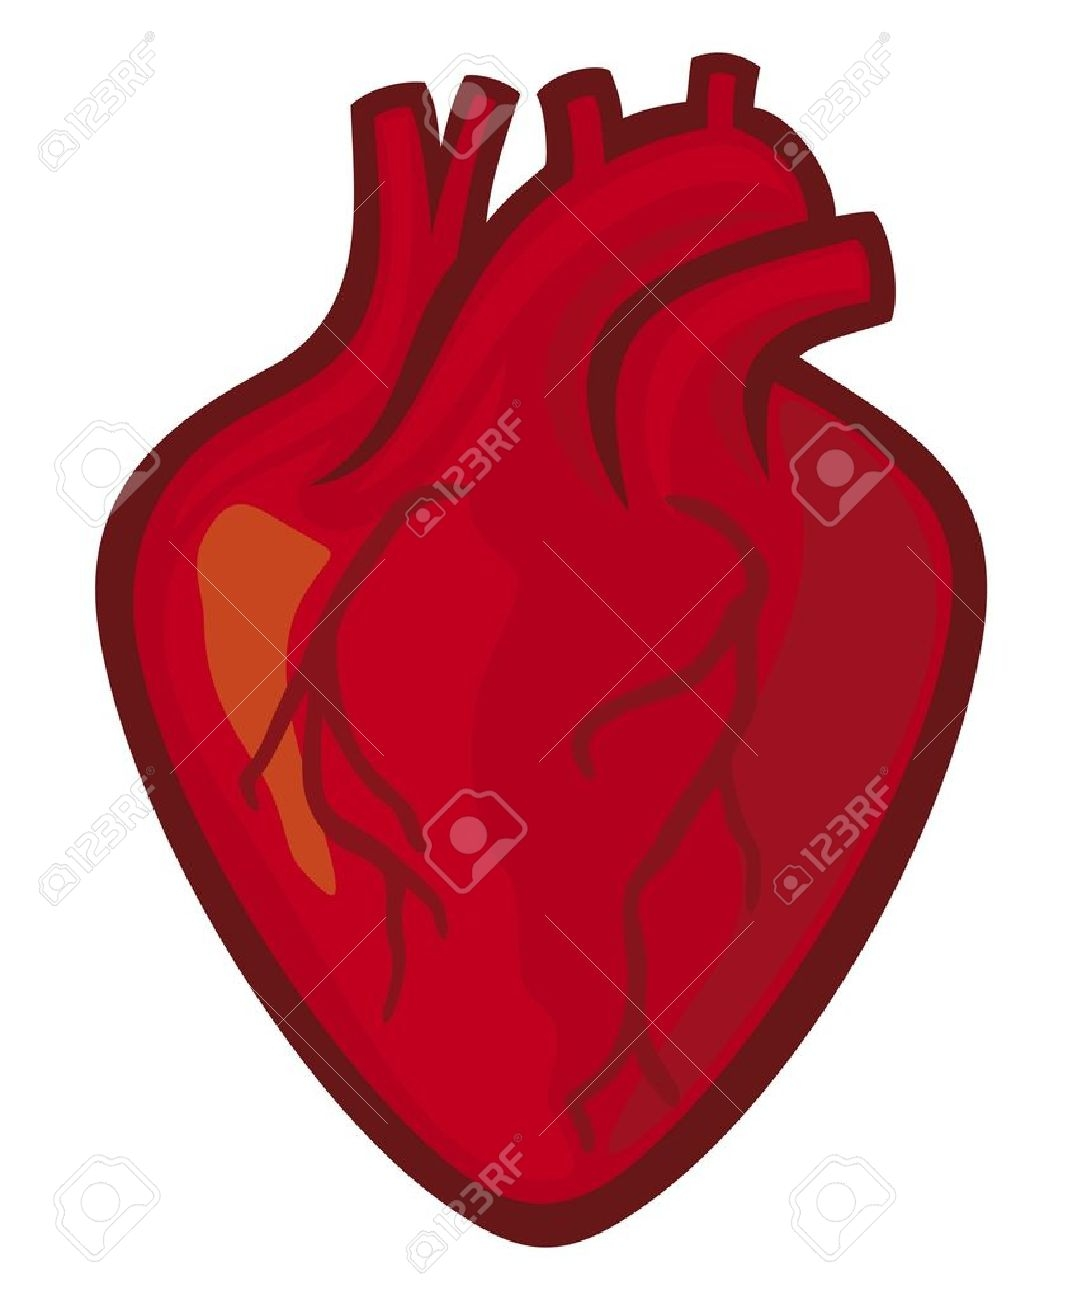 Real Heart Clipart | Free download on ClipArtMag